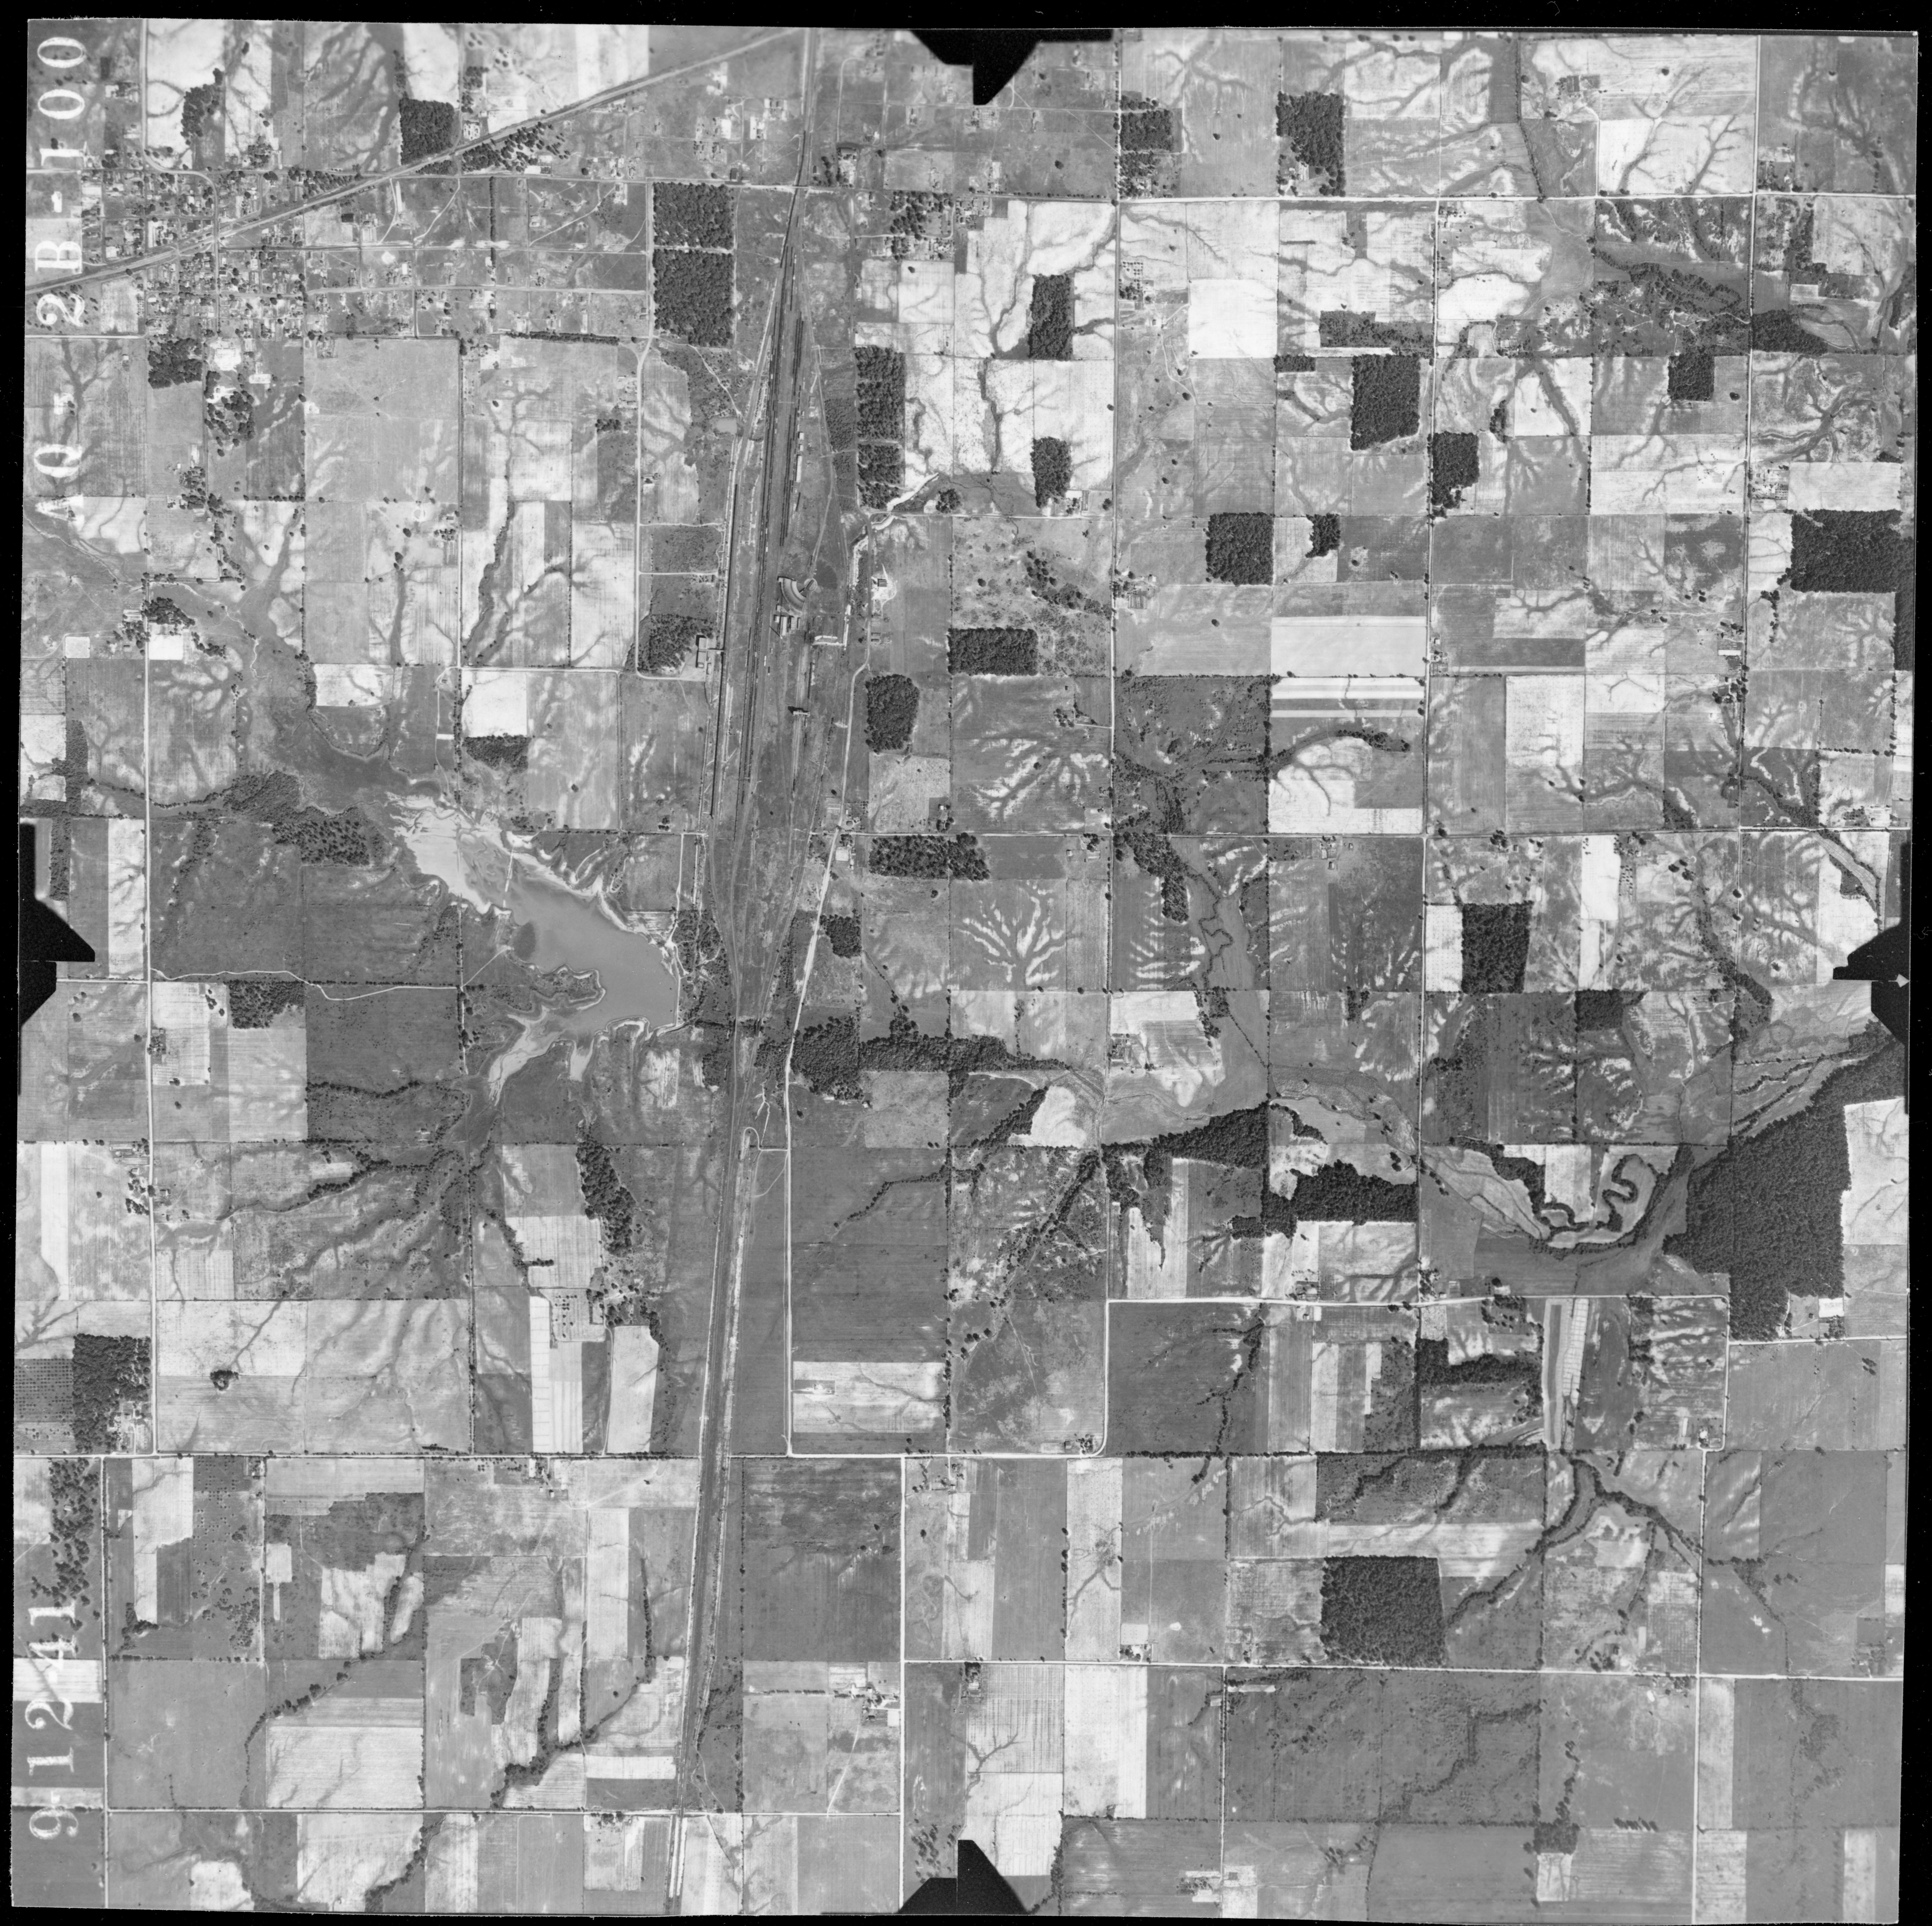 Illinois jefferson county bluford - 1941 Aerial Photo From Ilhap